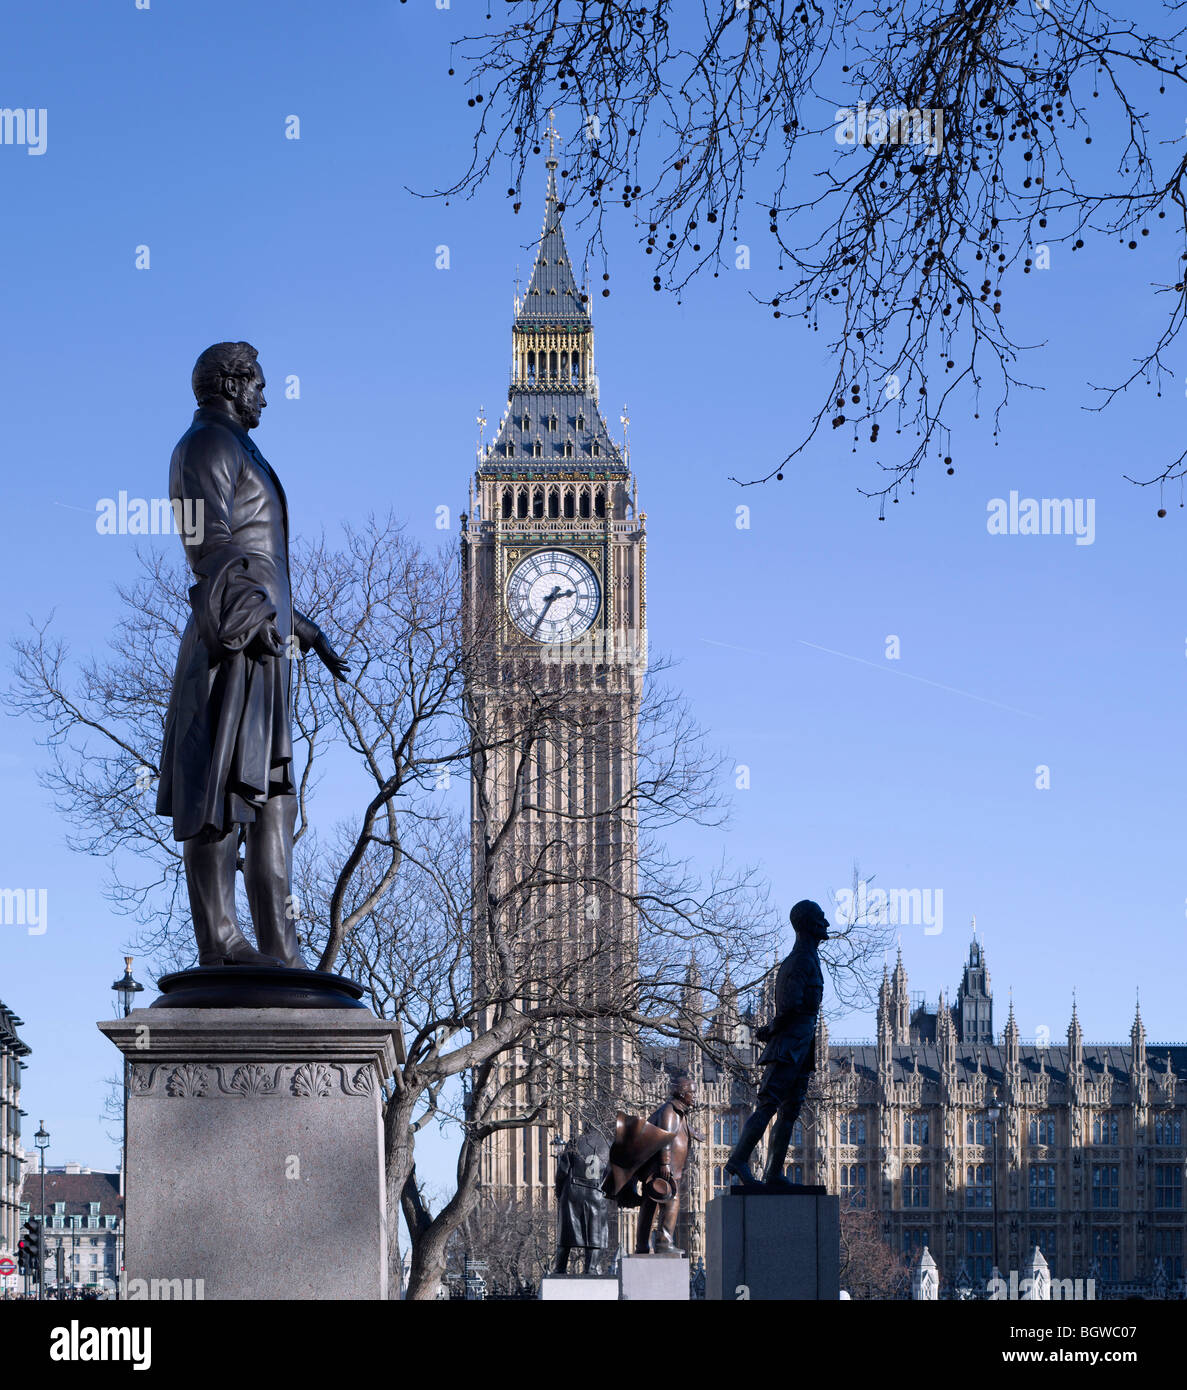 THE STATUES OF LONDON, LONDON, UNITED KINGDOM, UNKNOWN - Stock Image